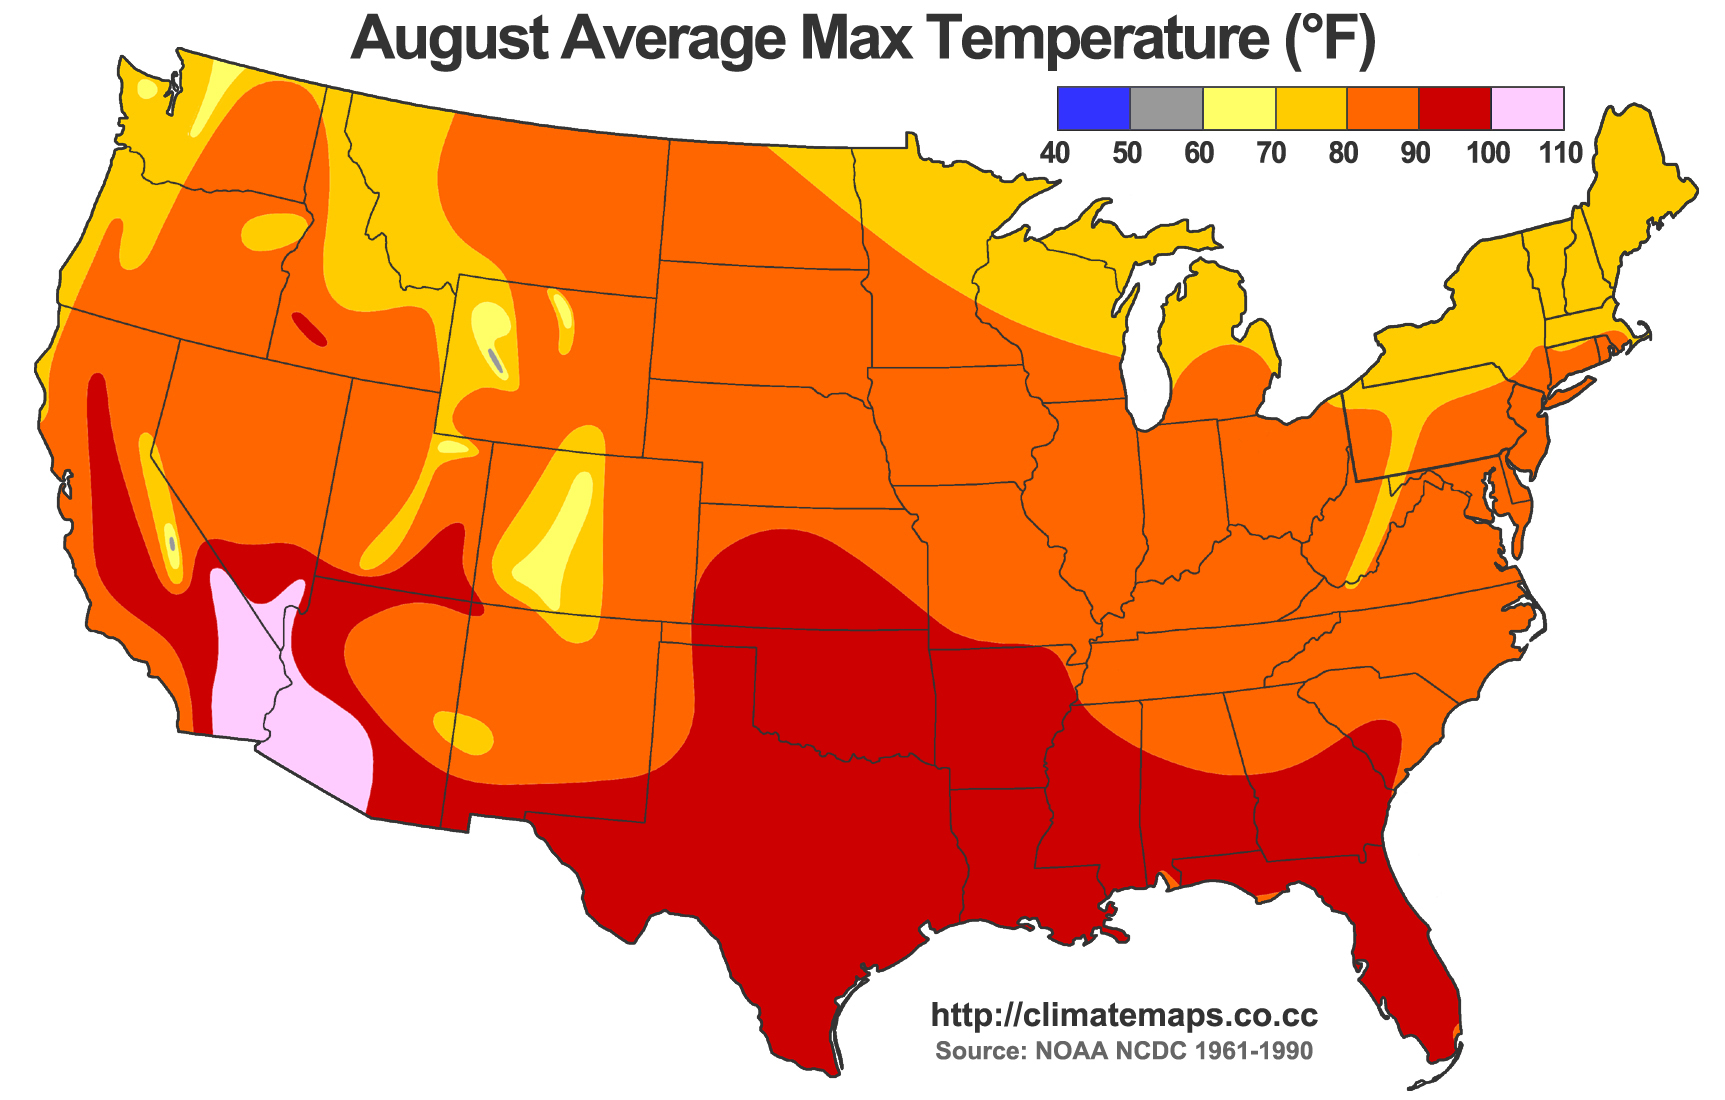 Average high temperatures in August (source: NOAA NCDC 1961-1990).